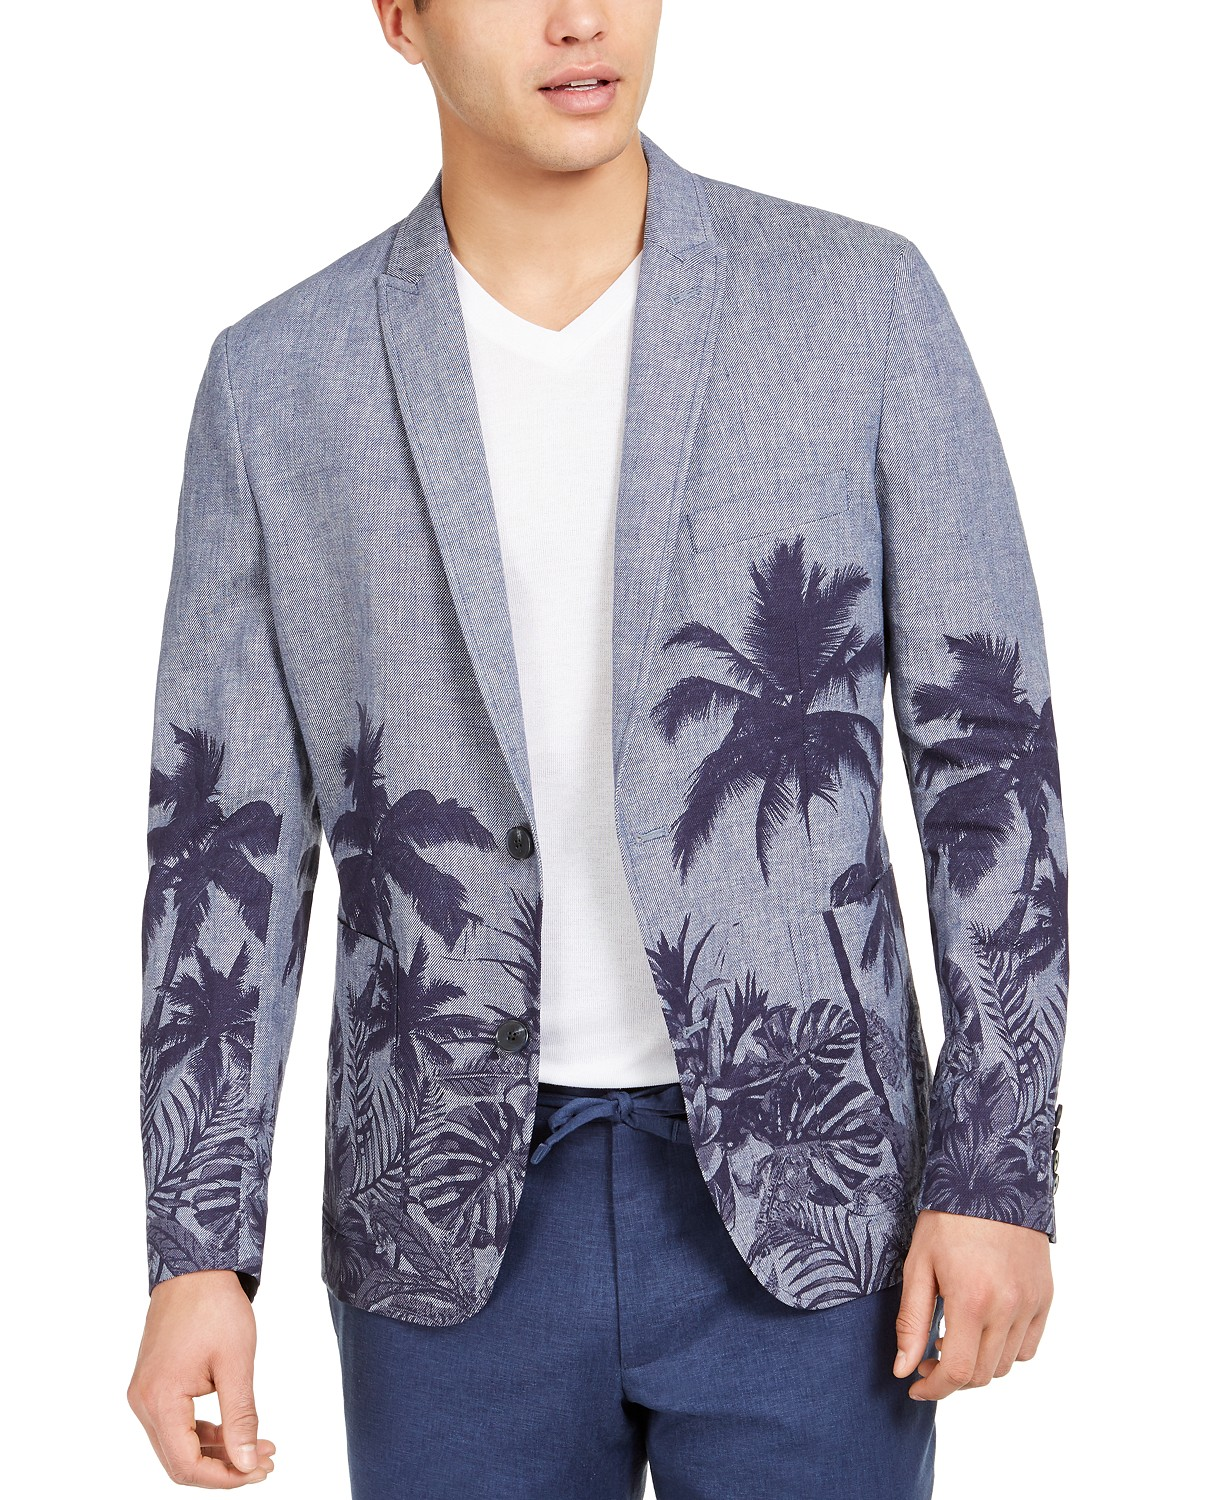 (89% OFF Deal) Palm Tree Blazer (Many More Styles Avail.) $39.93